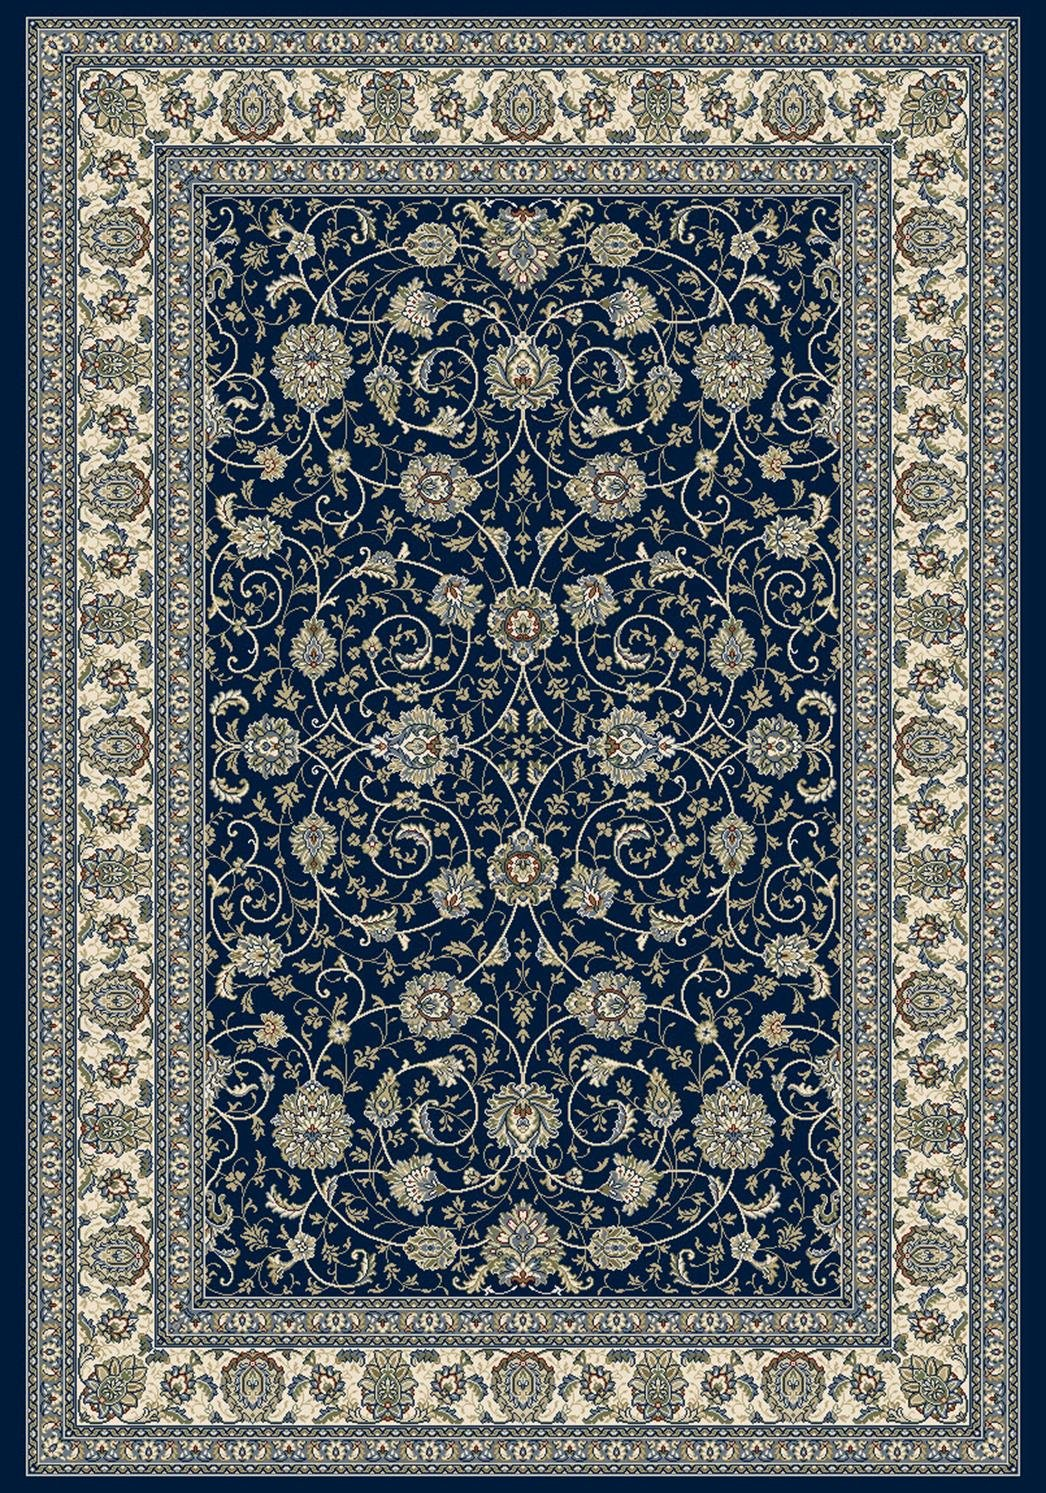 Dynamic Rugs AN24571203464 Ancient Garden Collection Runner Rug, 2' x 3'11', Blue/Ivory